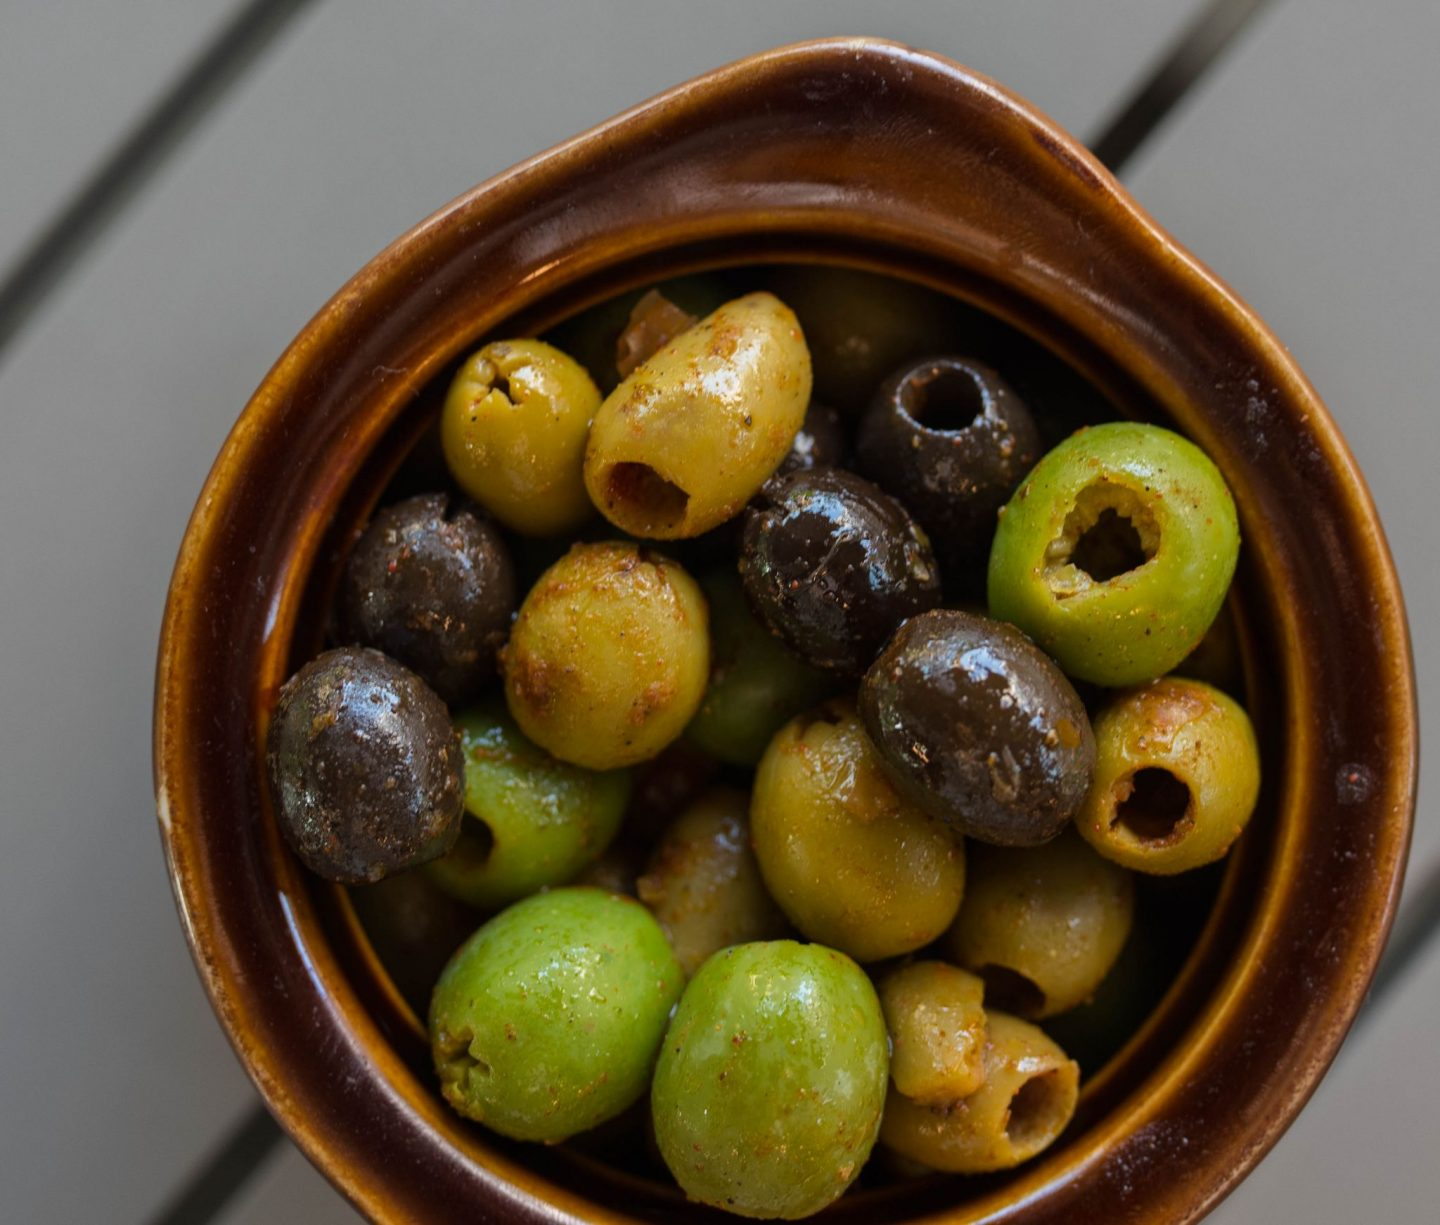 baltimore cultured olives